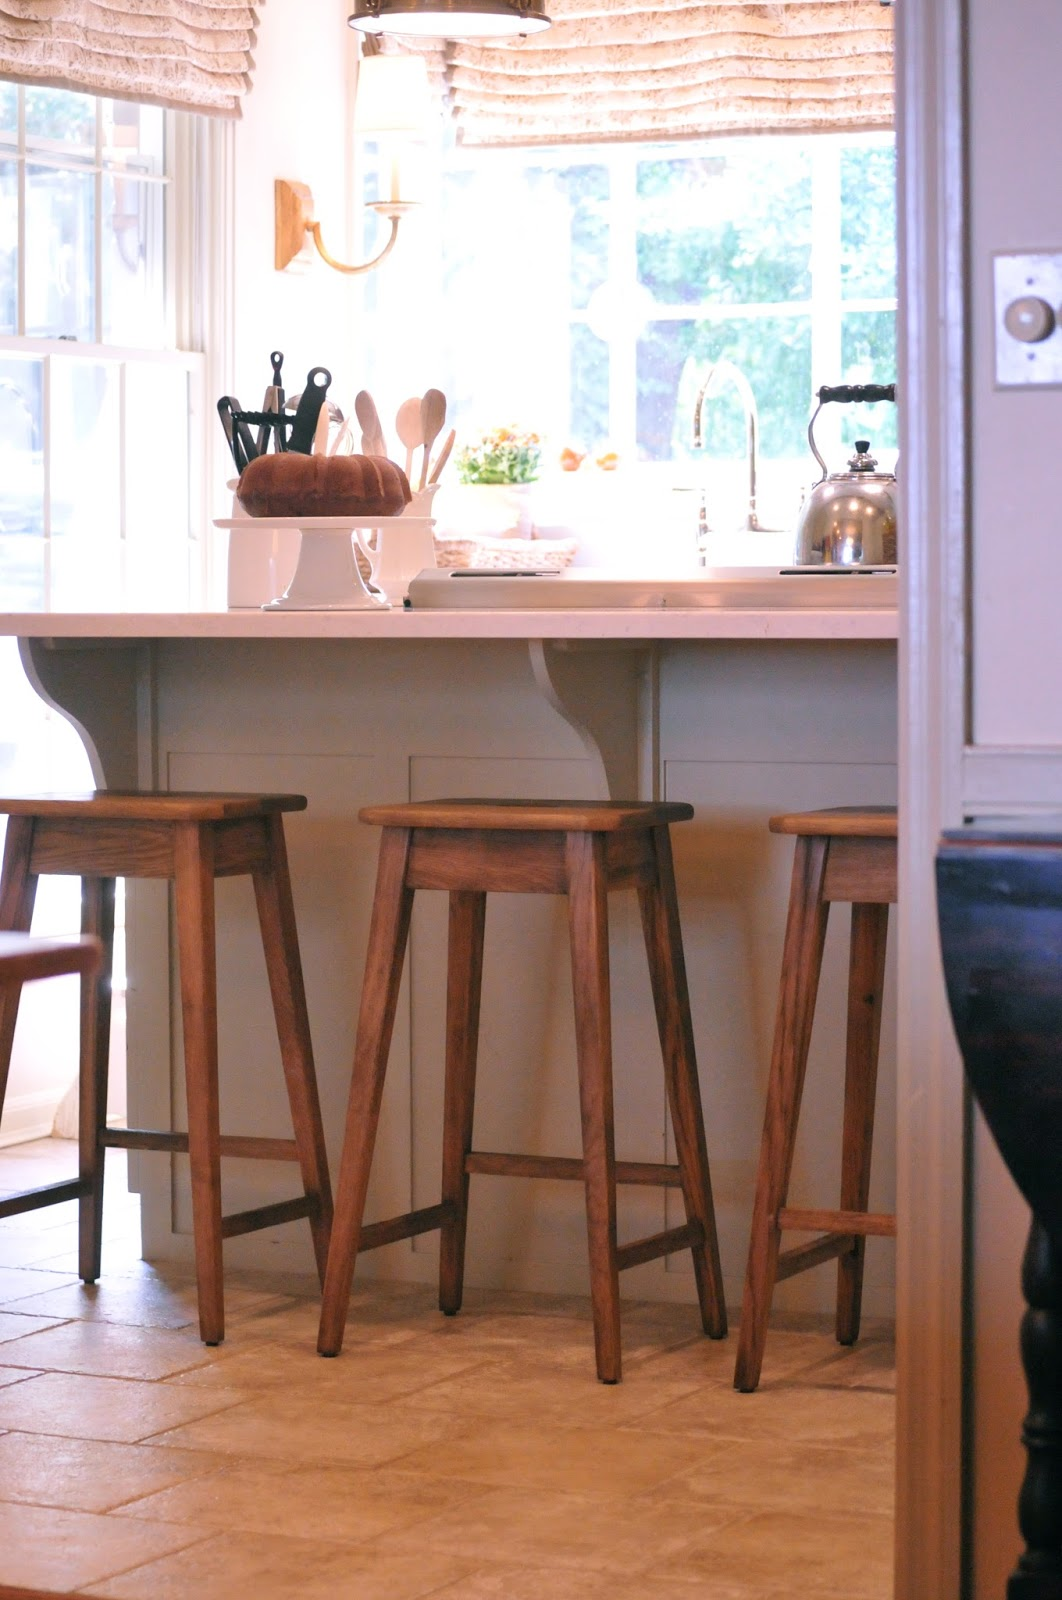 Countertop Stools Kitchen Appliances List Nine Sixteen Our Home New Counter